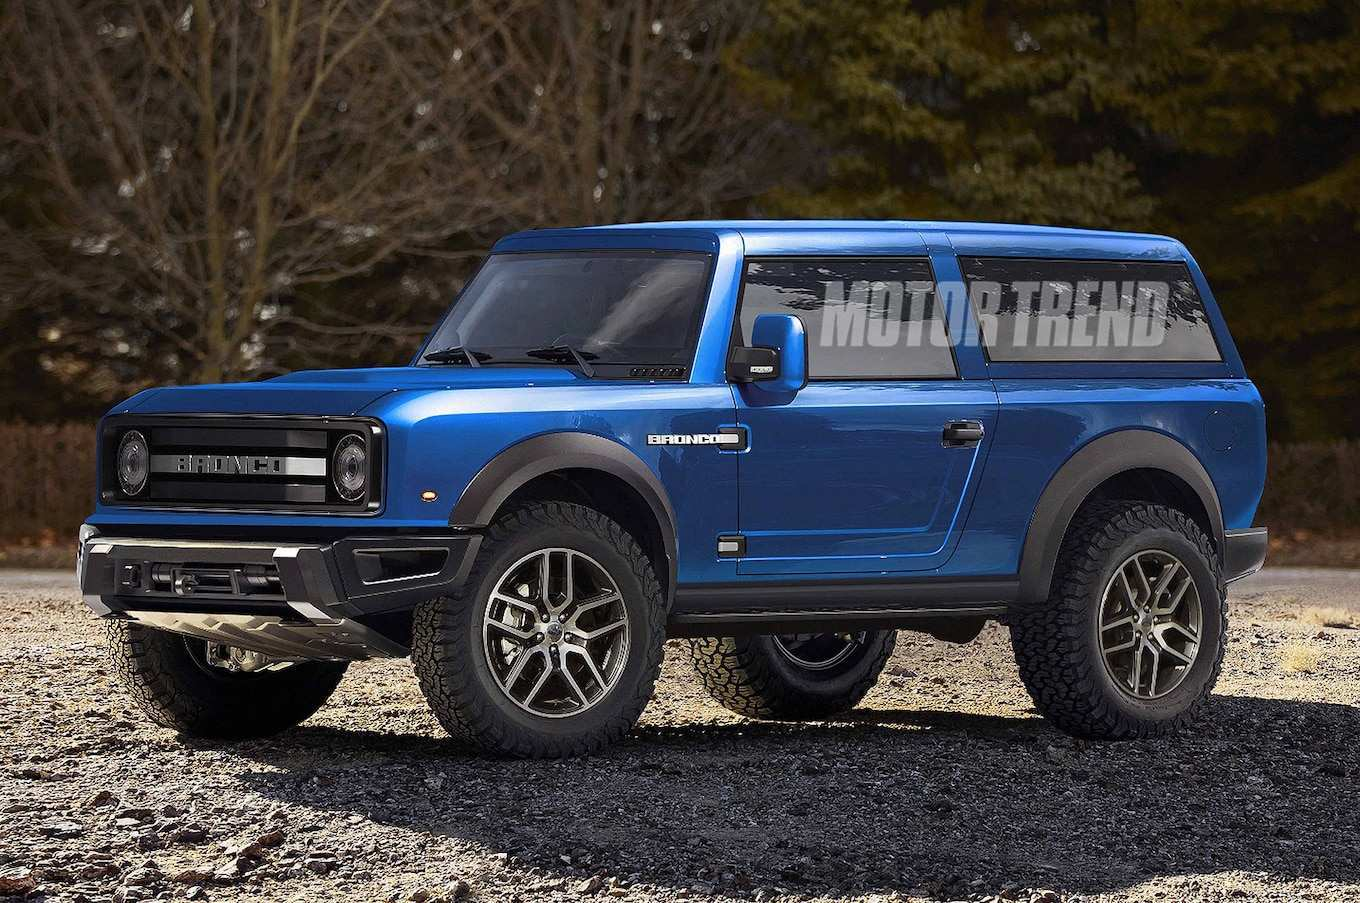 33 Gallery of Ford Bronco 2020 Images Research New with Ford Bronco 2020 Images